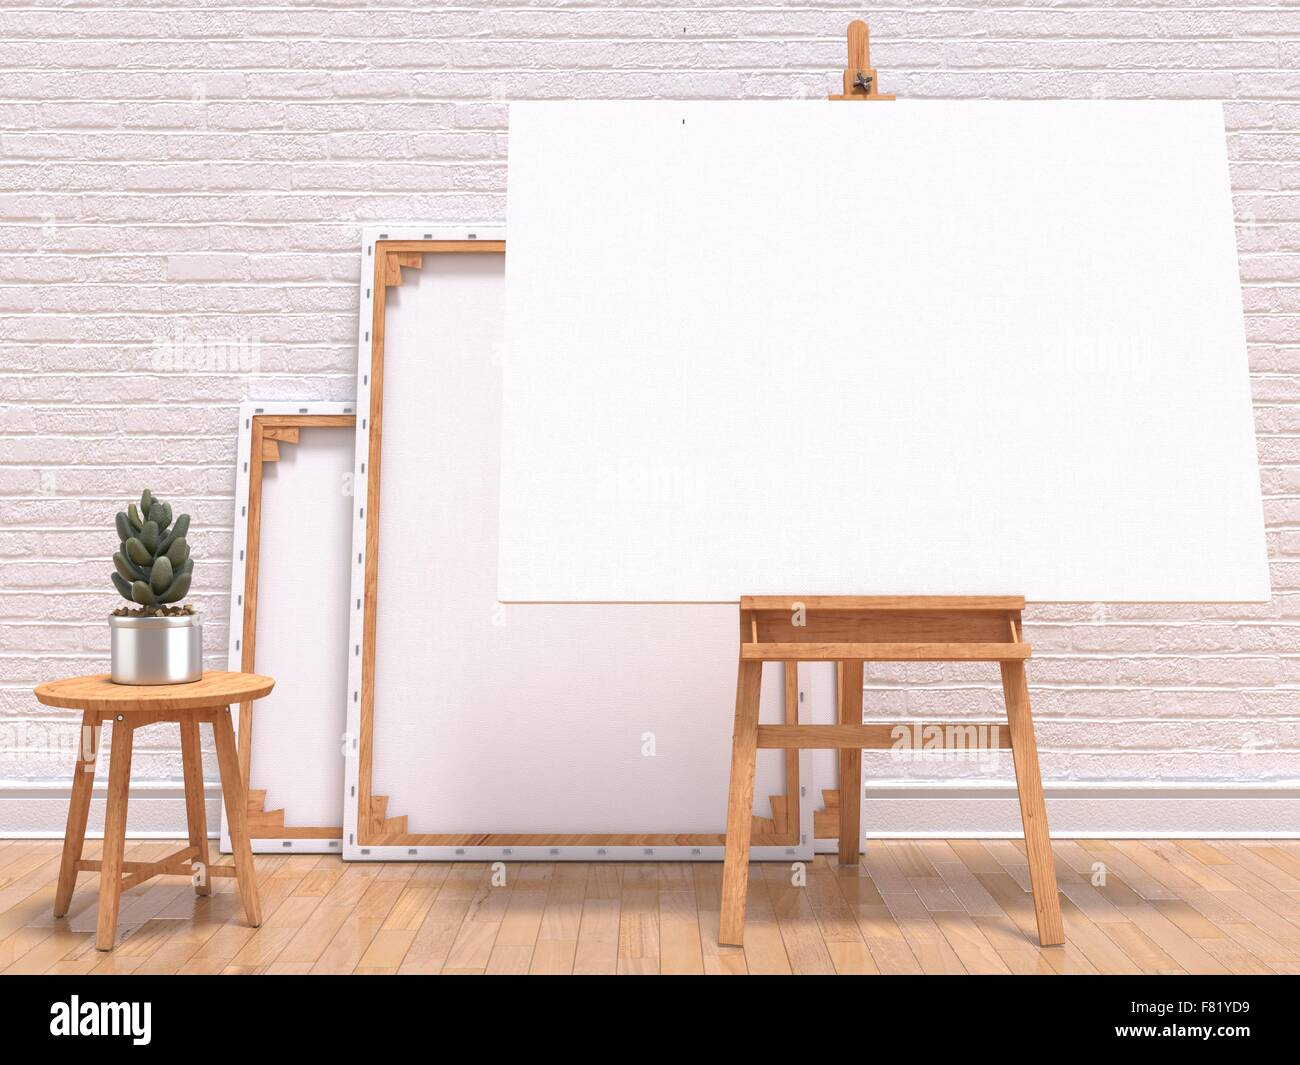 Mock up canvas frame with plant, easel, floor and wall. 3D render ...